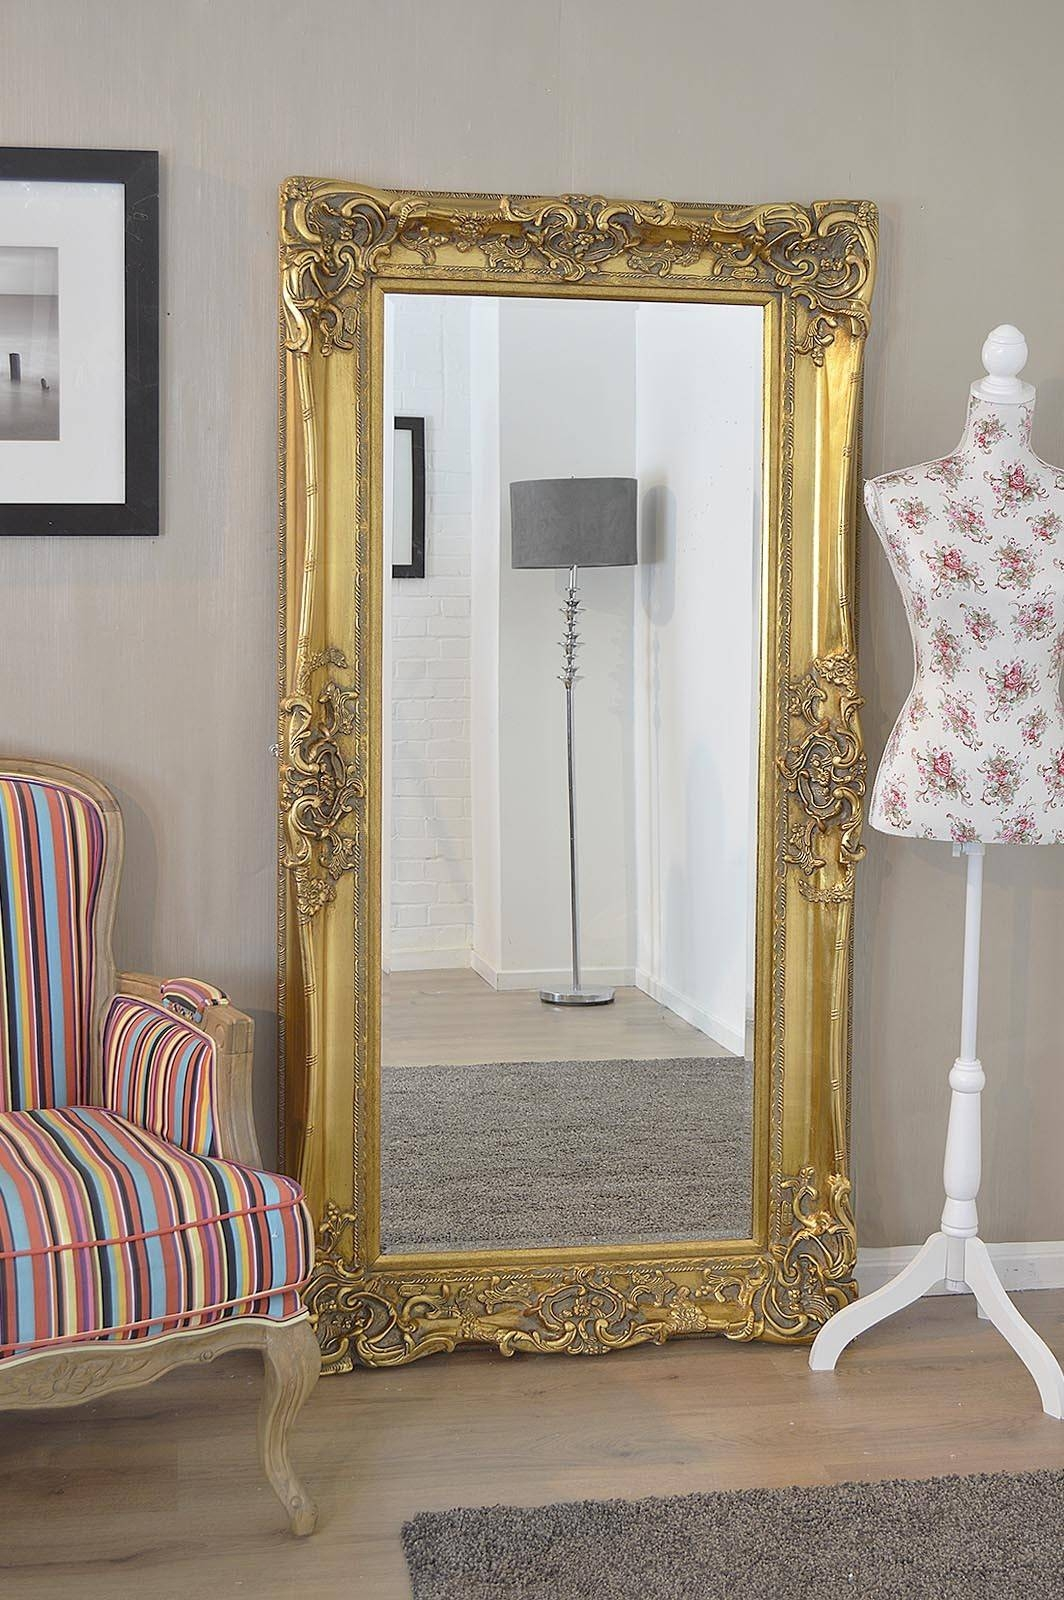 Vintage Wall Hanging Mirrors Antique Mirror Wall Hooks - Classic in Antique Long Mirrors (Image 15 of 15)